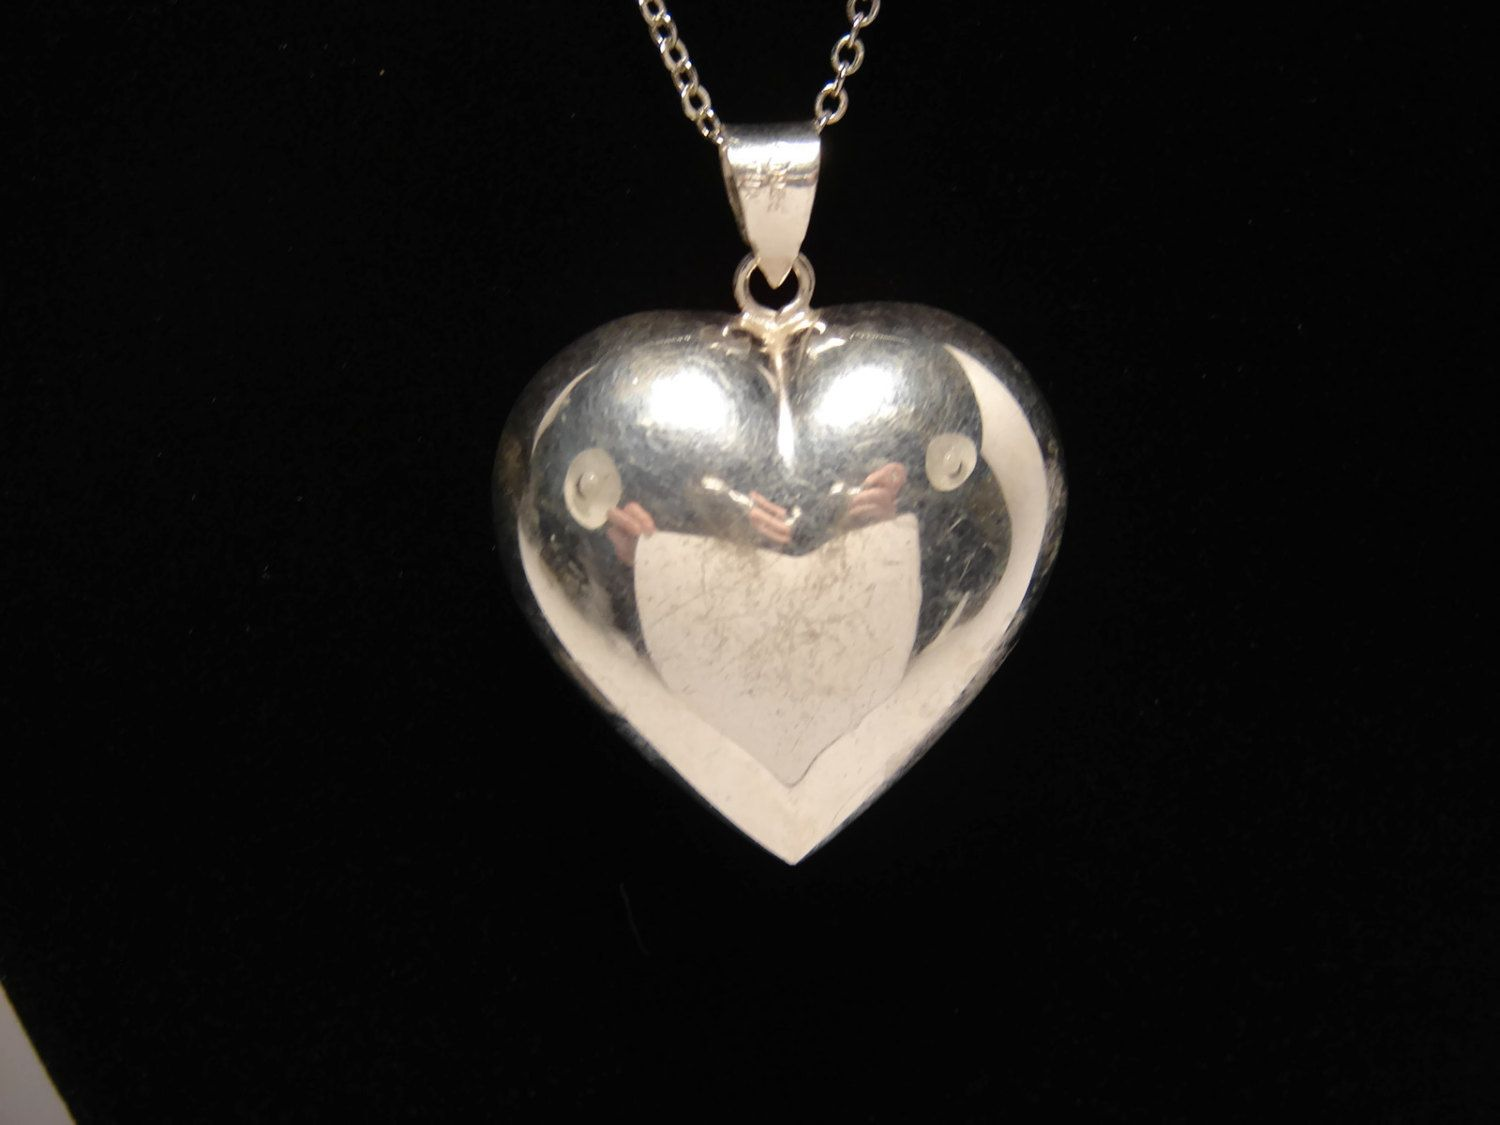 Large sterling puffy heart pendant sterling silver vintage jewelry large sterling puffy heart pendant sterling silver vintage jewelry silver heart 1990s jewelry 925 silver puffed heart aloadofball Images